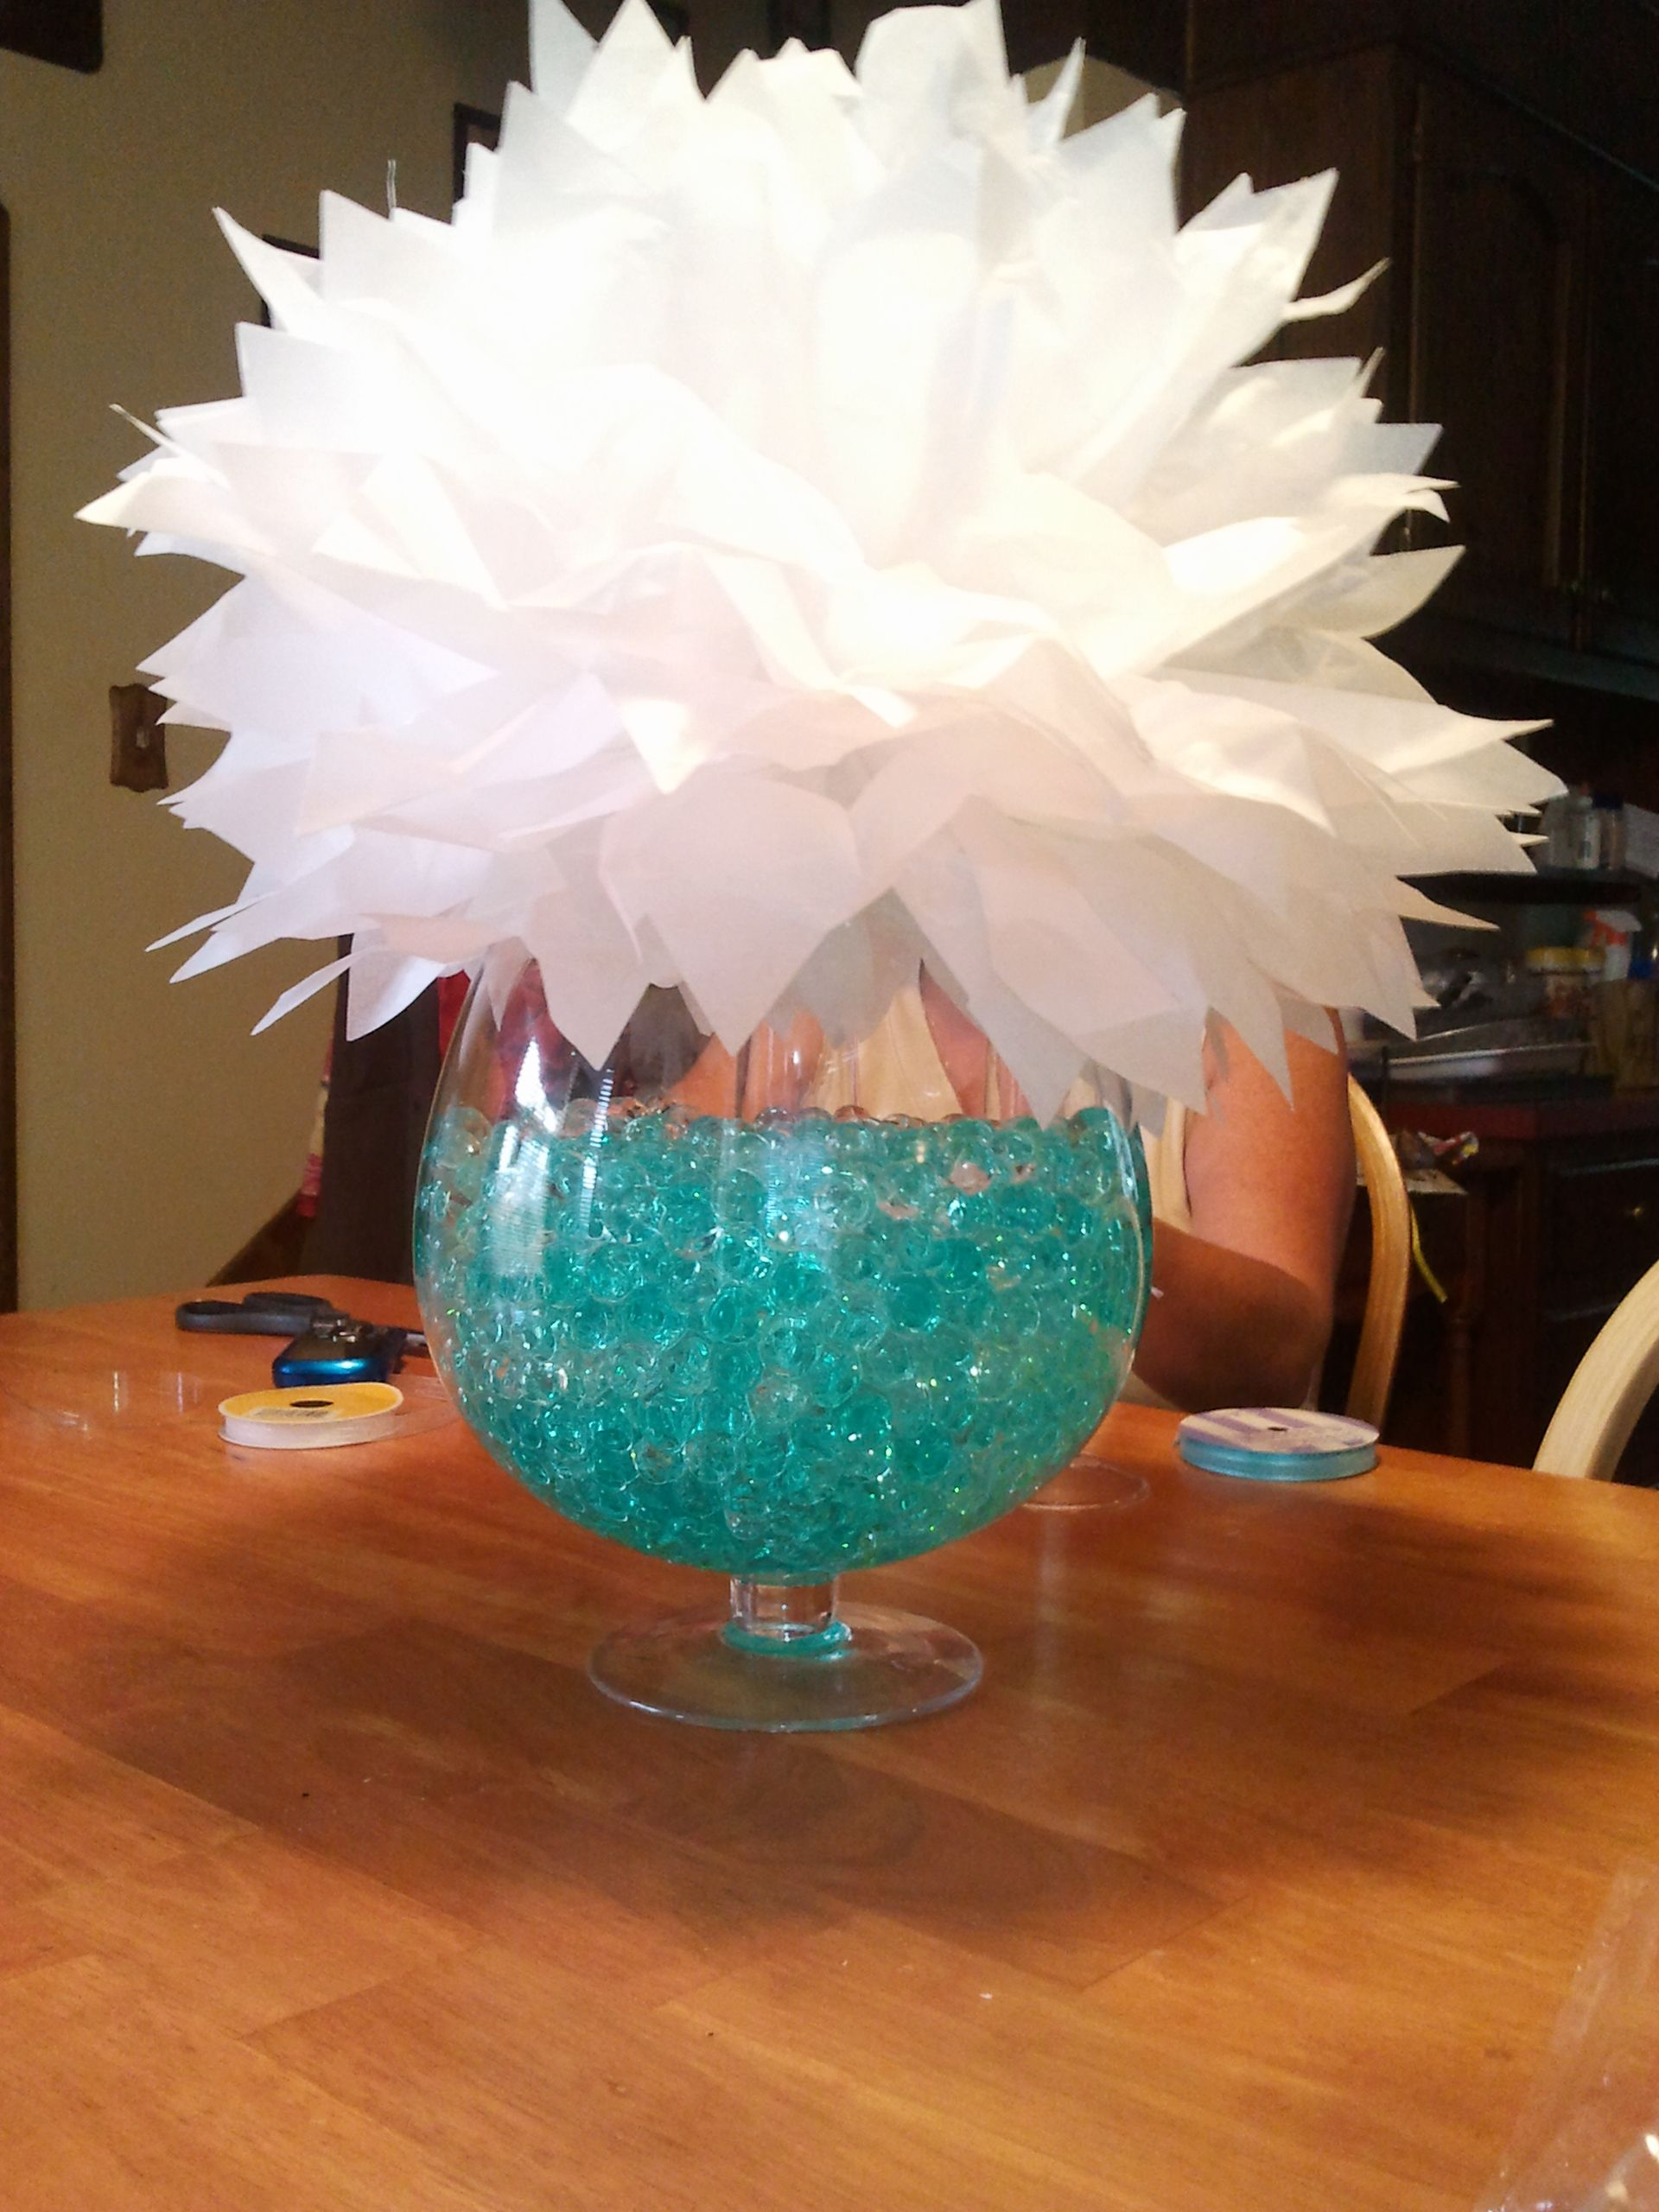 Fish Bowl Vase Bowl Filled With Clear And Turquoise Water Beads From Walmart Tissue Paper